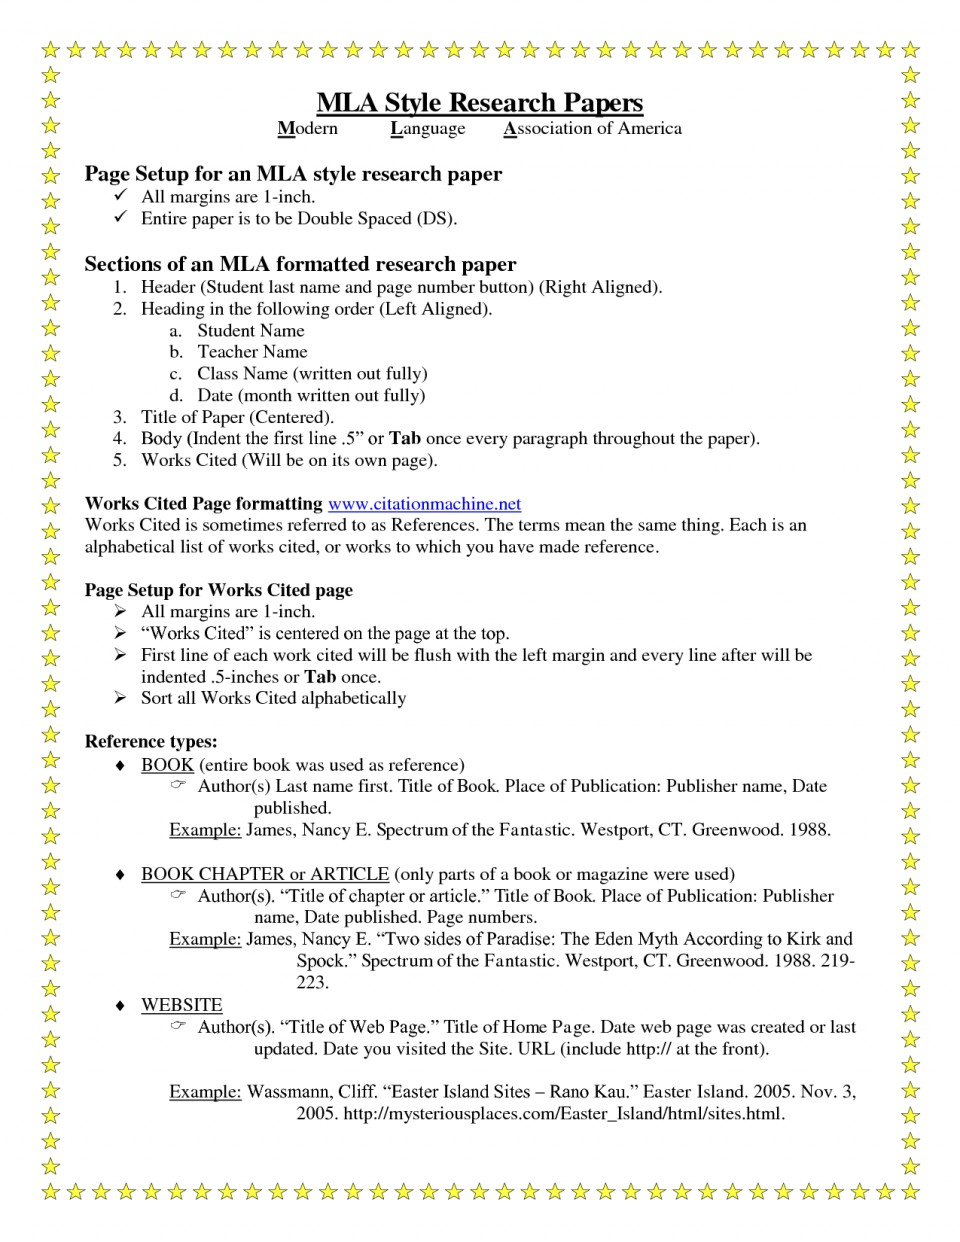 008 Research Paper Proper Order Of Sections In Apa Format Marvelous A 960